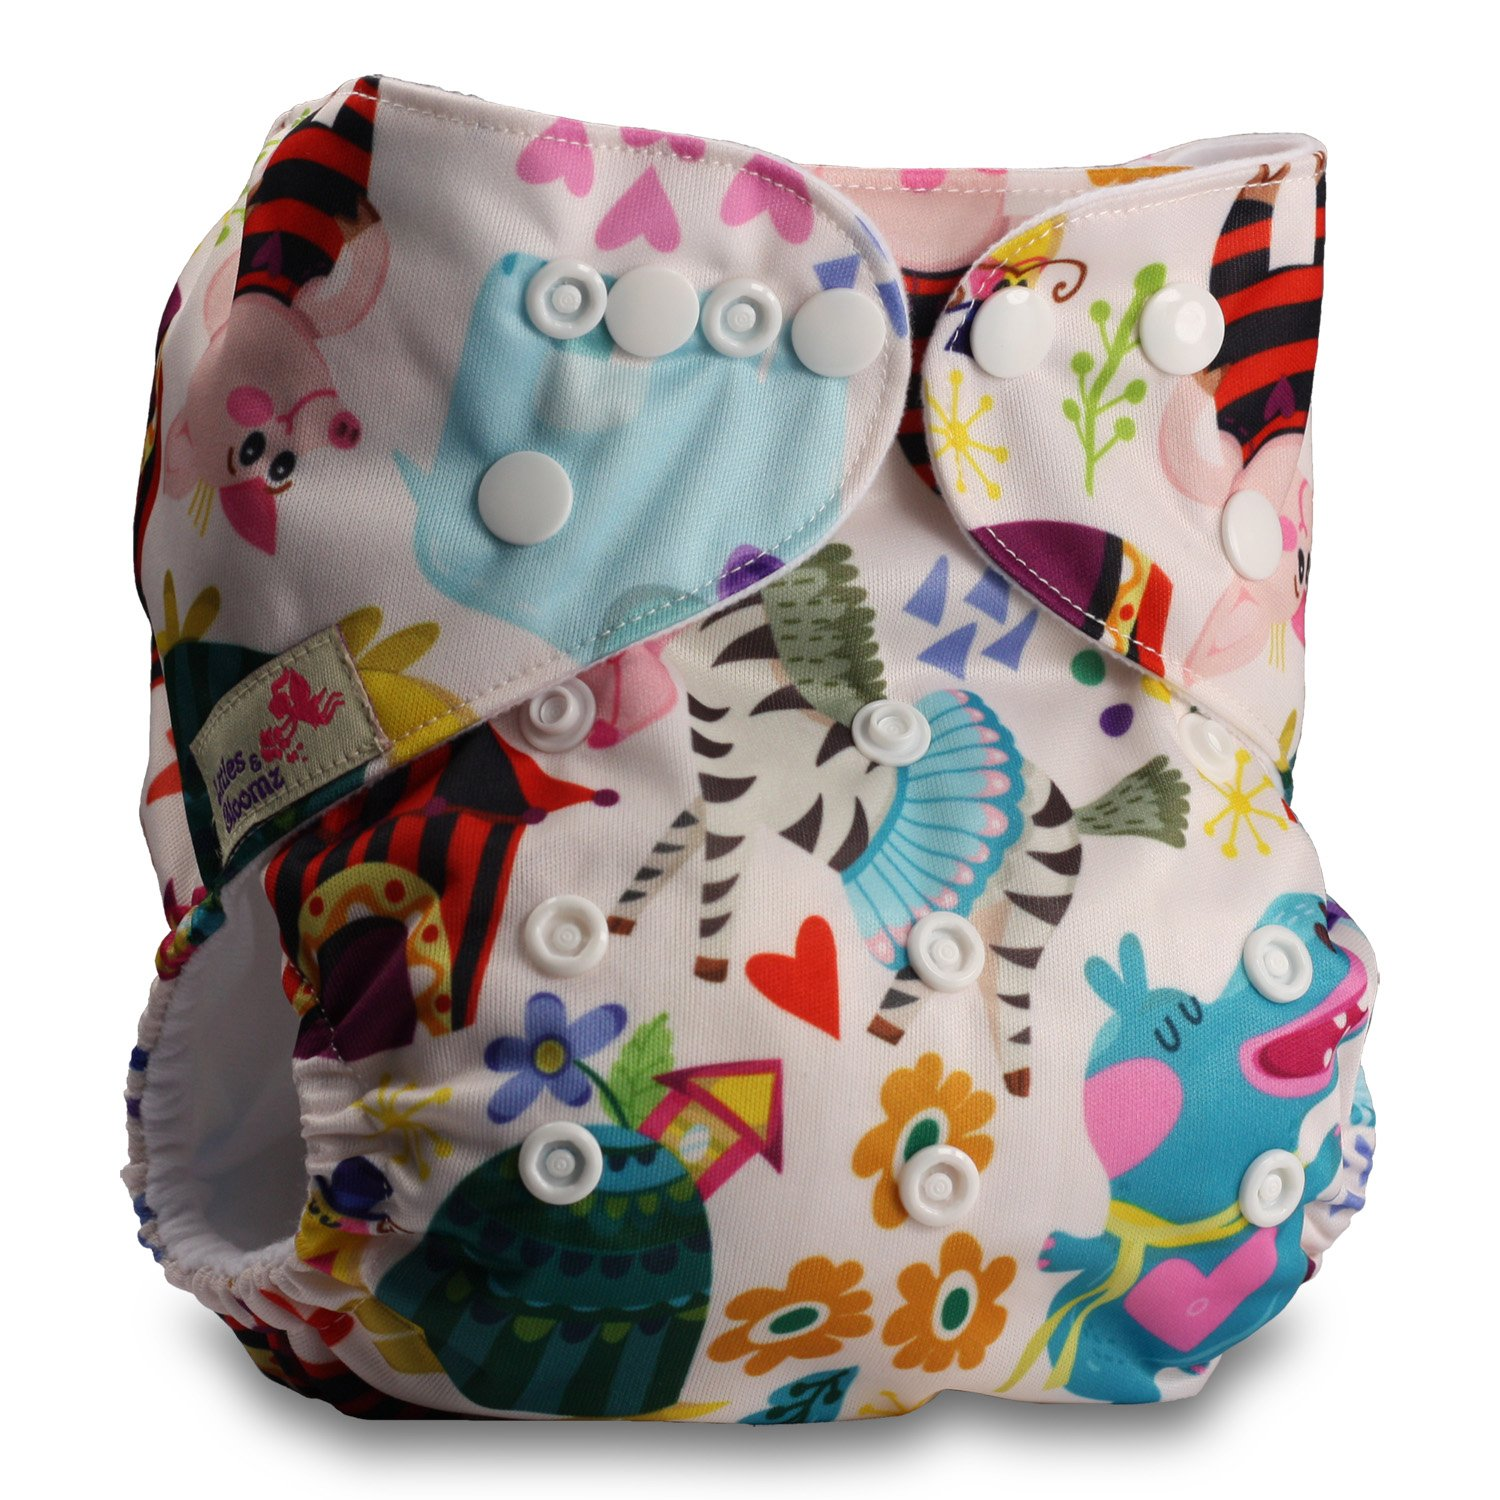 Fastener: Popper with 2 Bamboo Inserts Baby Cloth Washable Reusable Nappy Pocket Diaper Bamboo Littles /& Bloomz Pattern 20